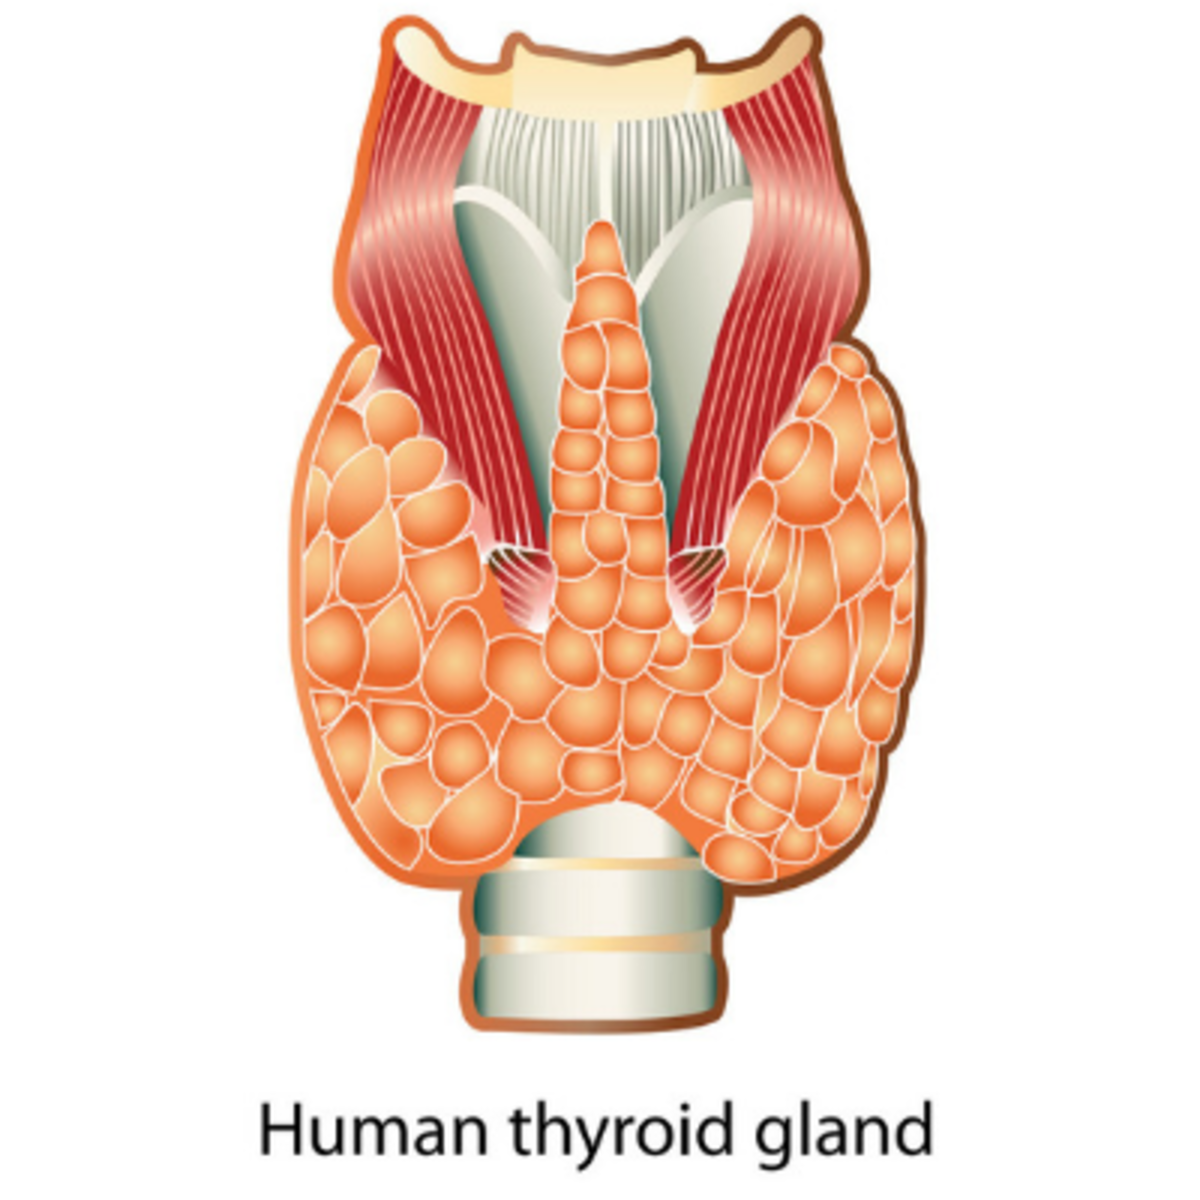 The thyroid is a butterfly-shaped gland on the front of the neck which produces hormones.